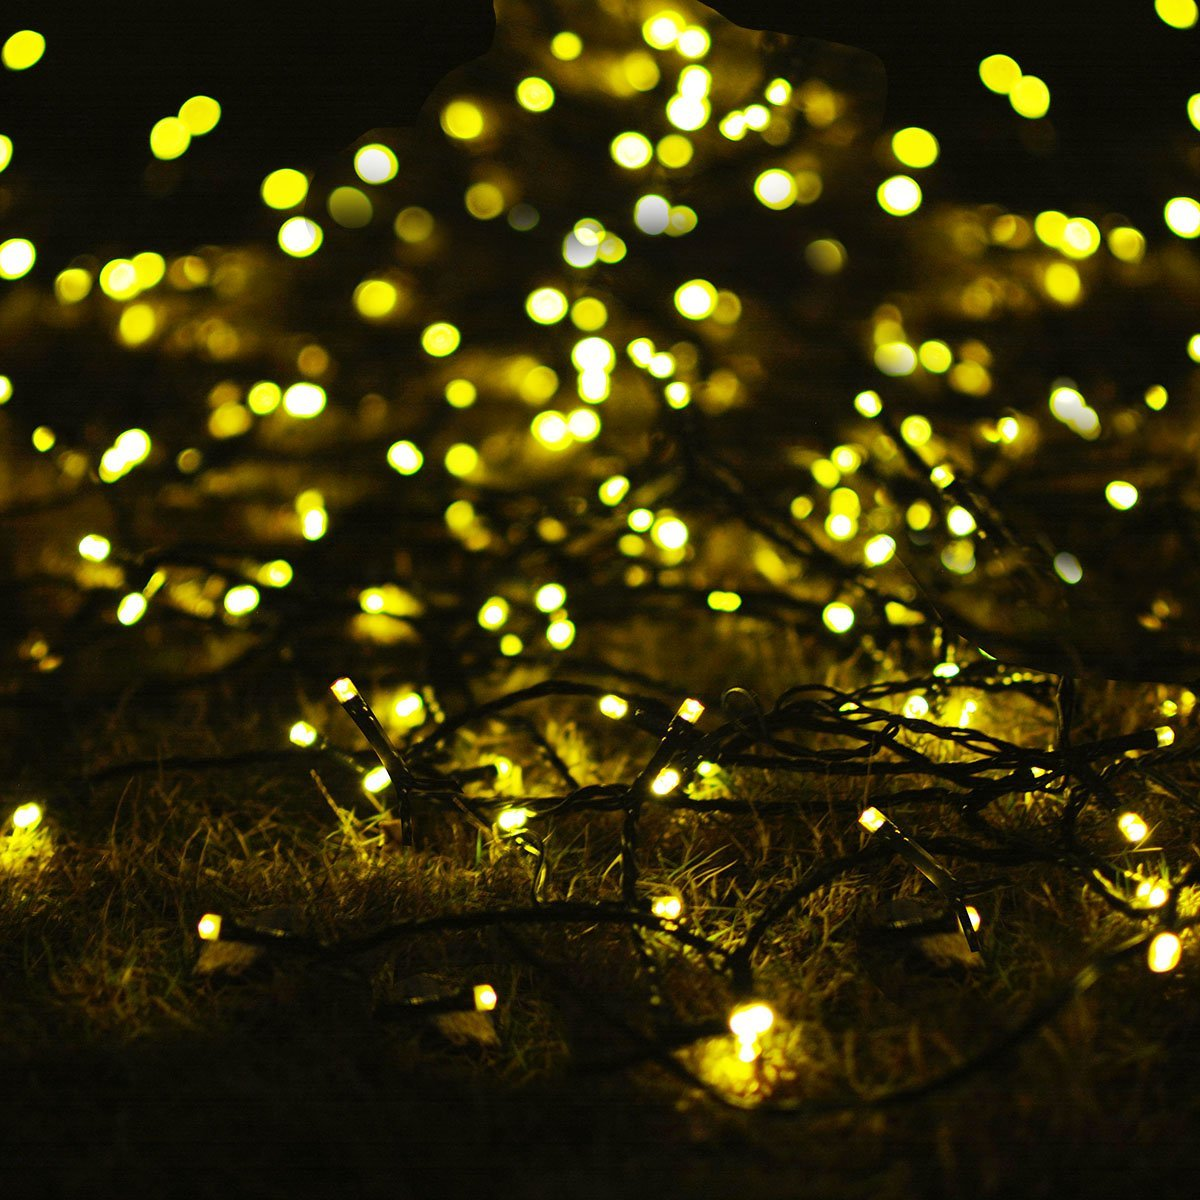 (2-Packs)Solar Outdoor Lights 72ft 200 LED Halloween Fairy String Lights for Gardens,Homes,Wedding,Party,Waterproof(Warm White) - image 14 of 15